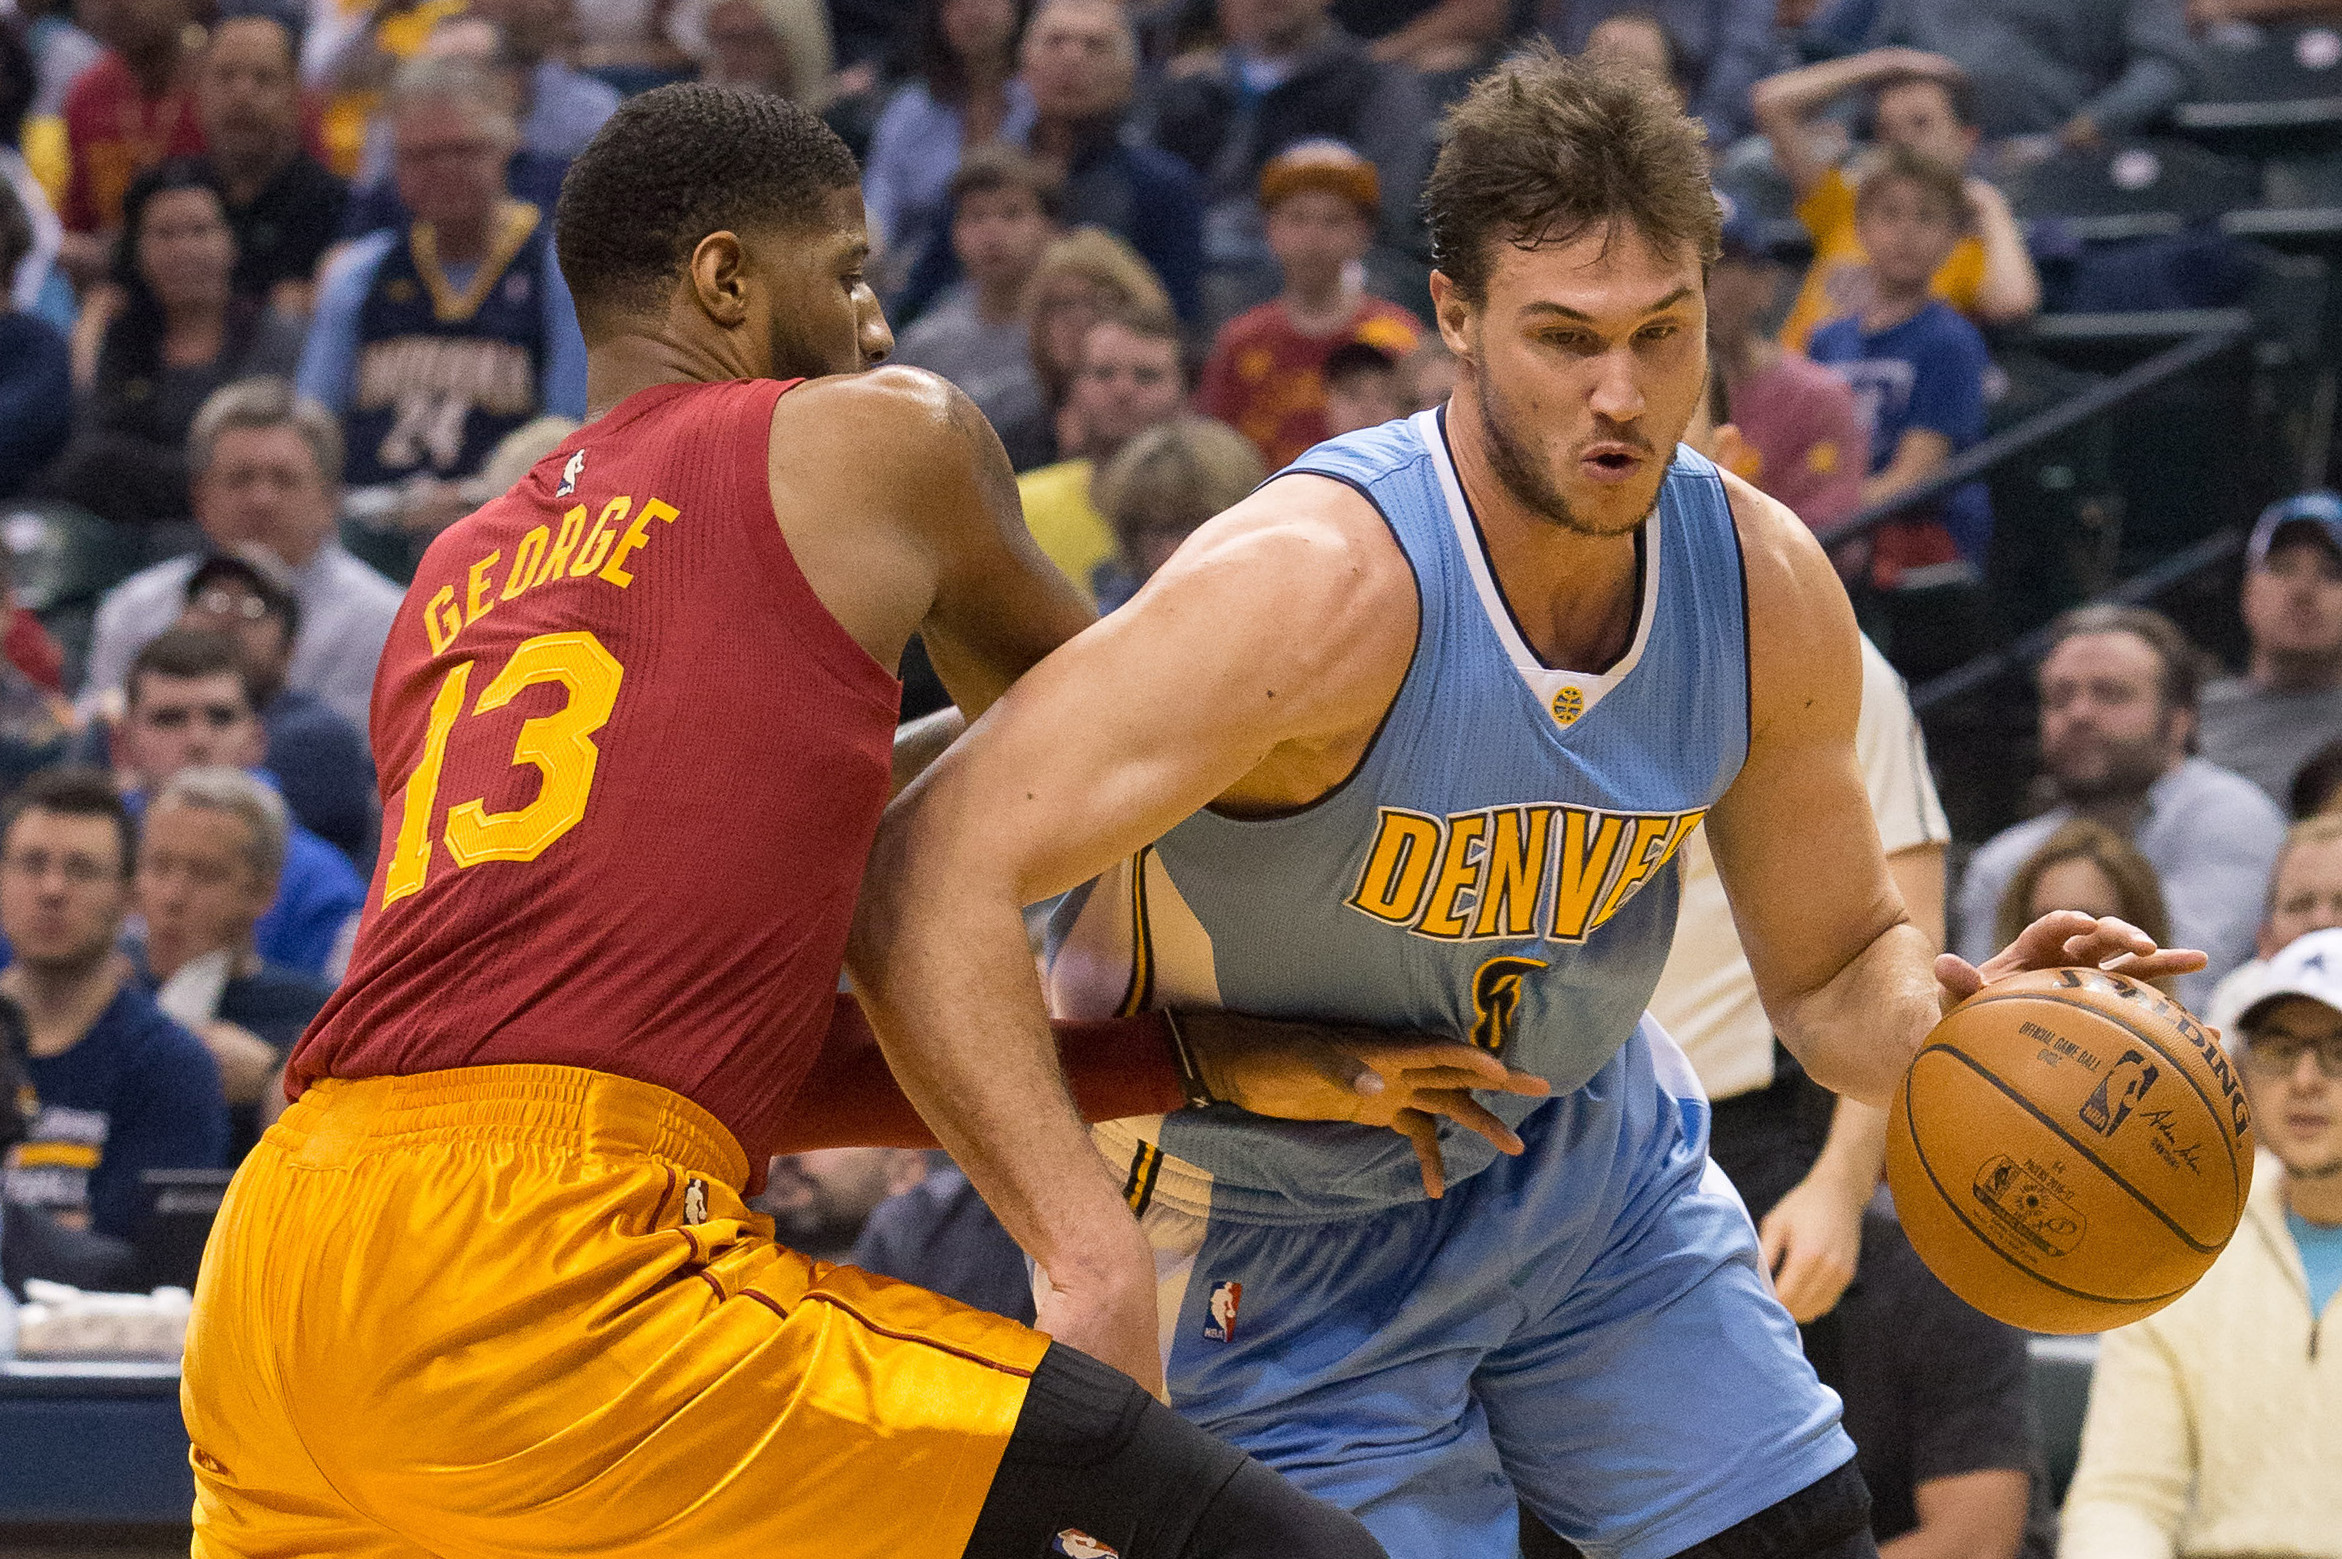 9968166-nba-denver-nuggets-at-indiana-pacers